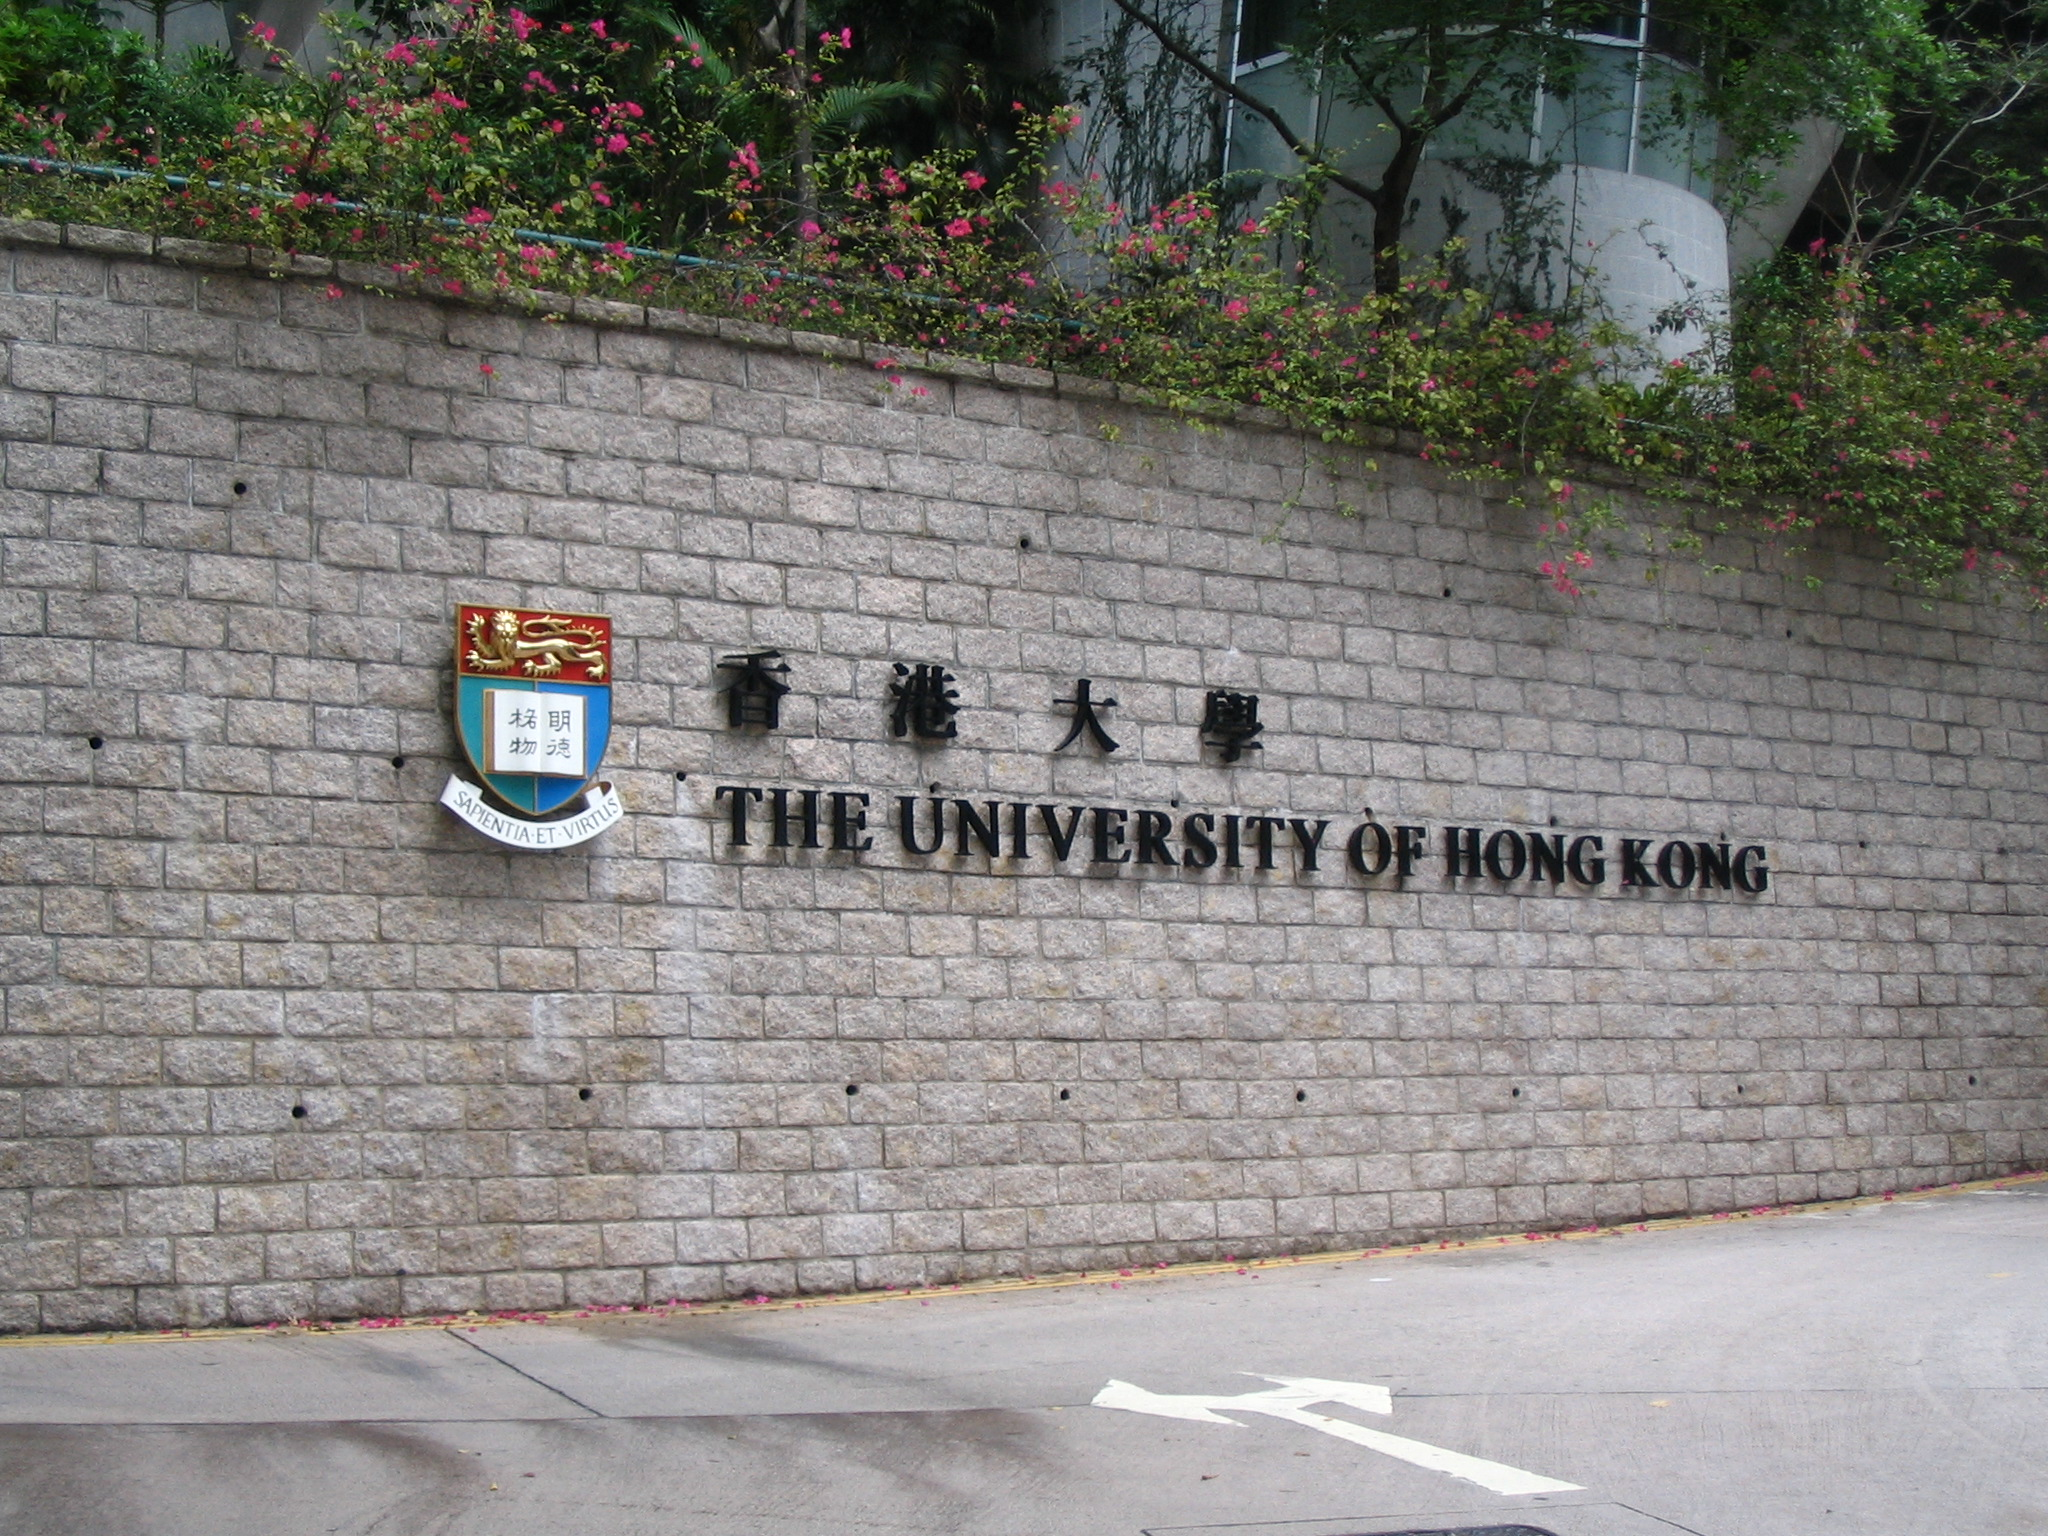 the university of hong kong midterm Studying in hong kong sharing experience cuhk campus environment colleges all-round development events programmes individual programmes undergraduate curriculum application jupas requirements application details important dates.